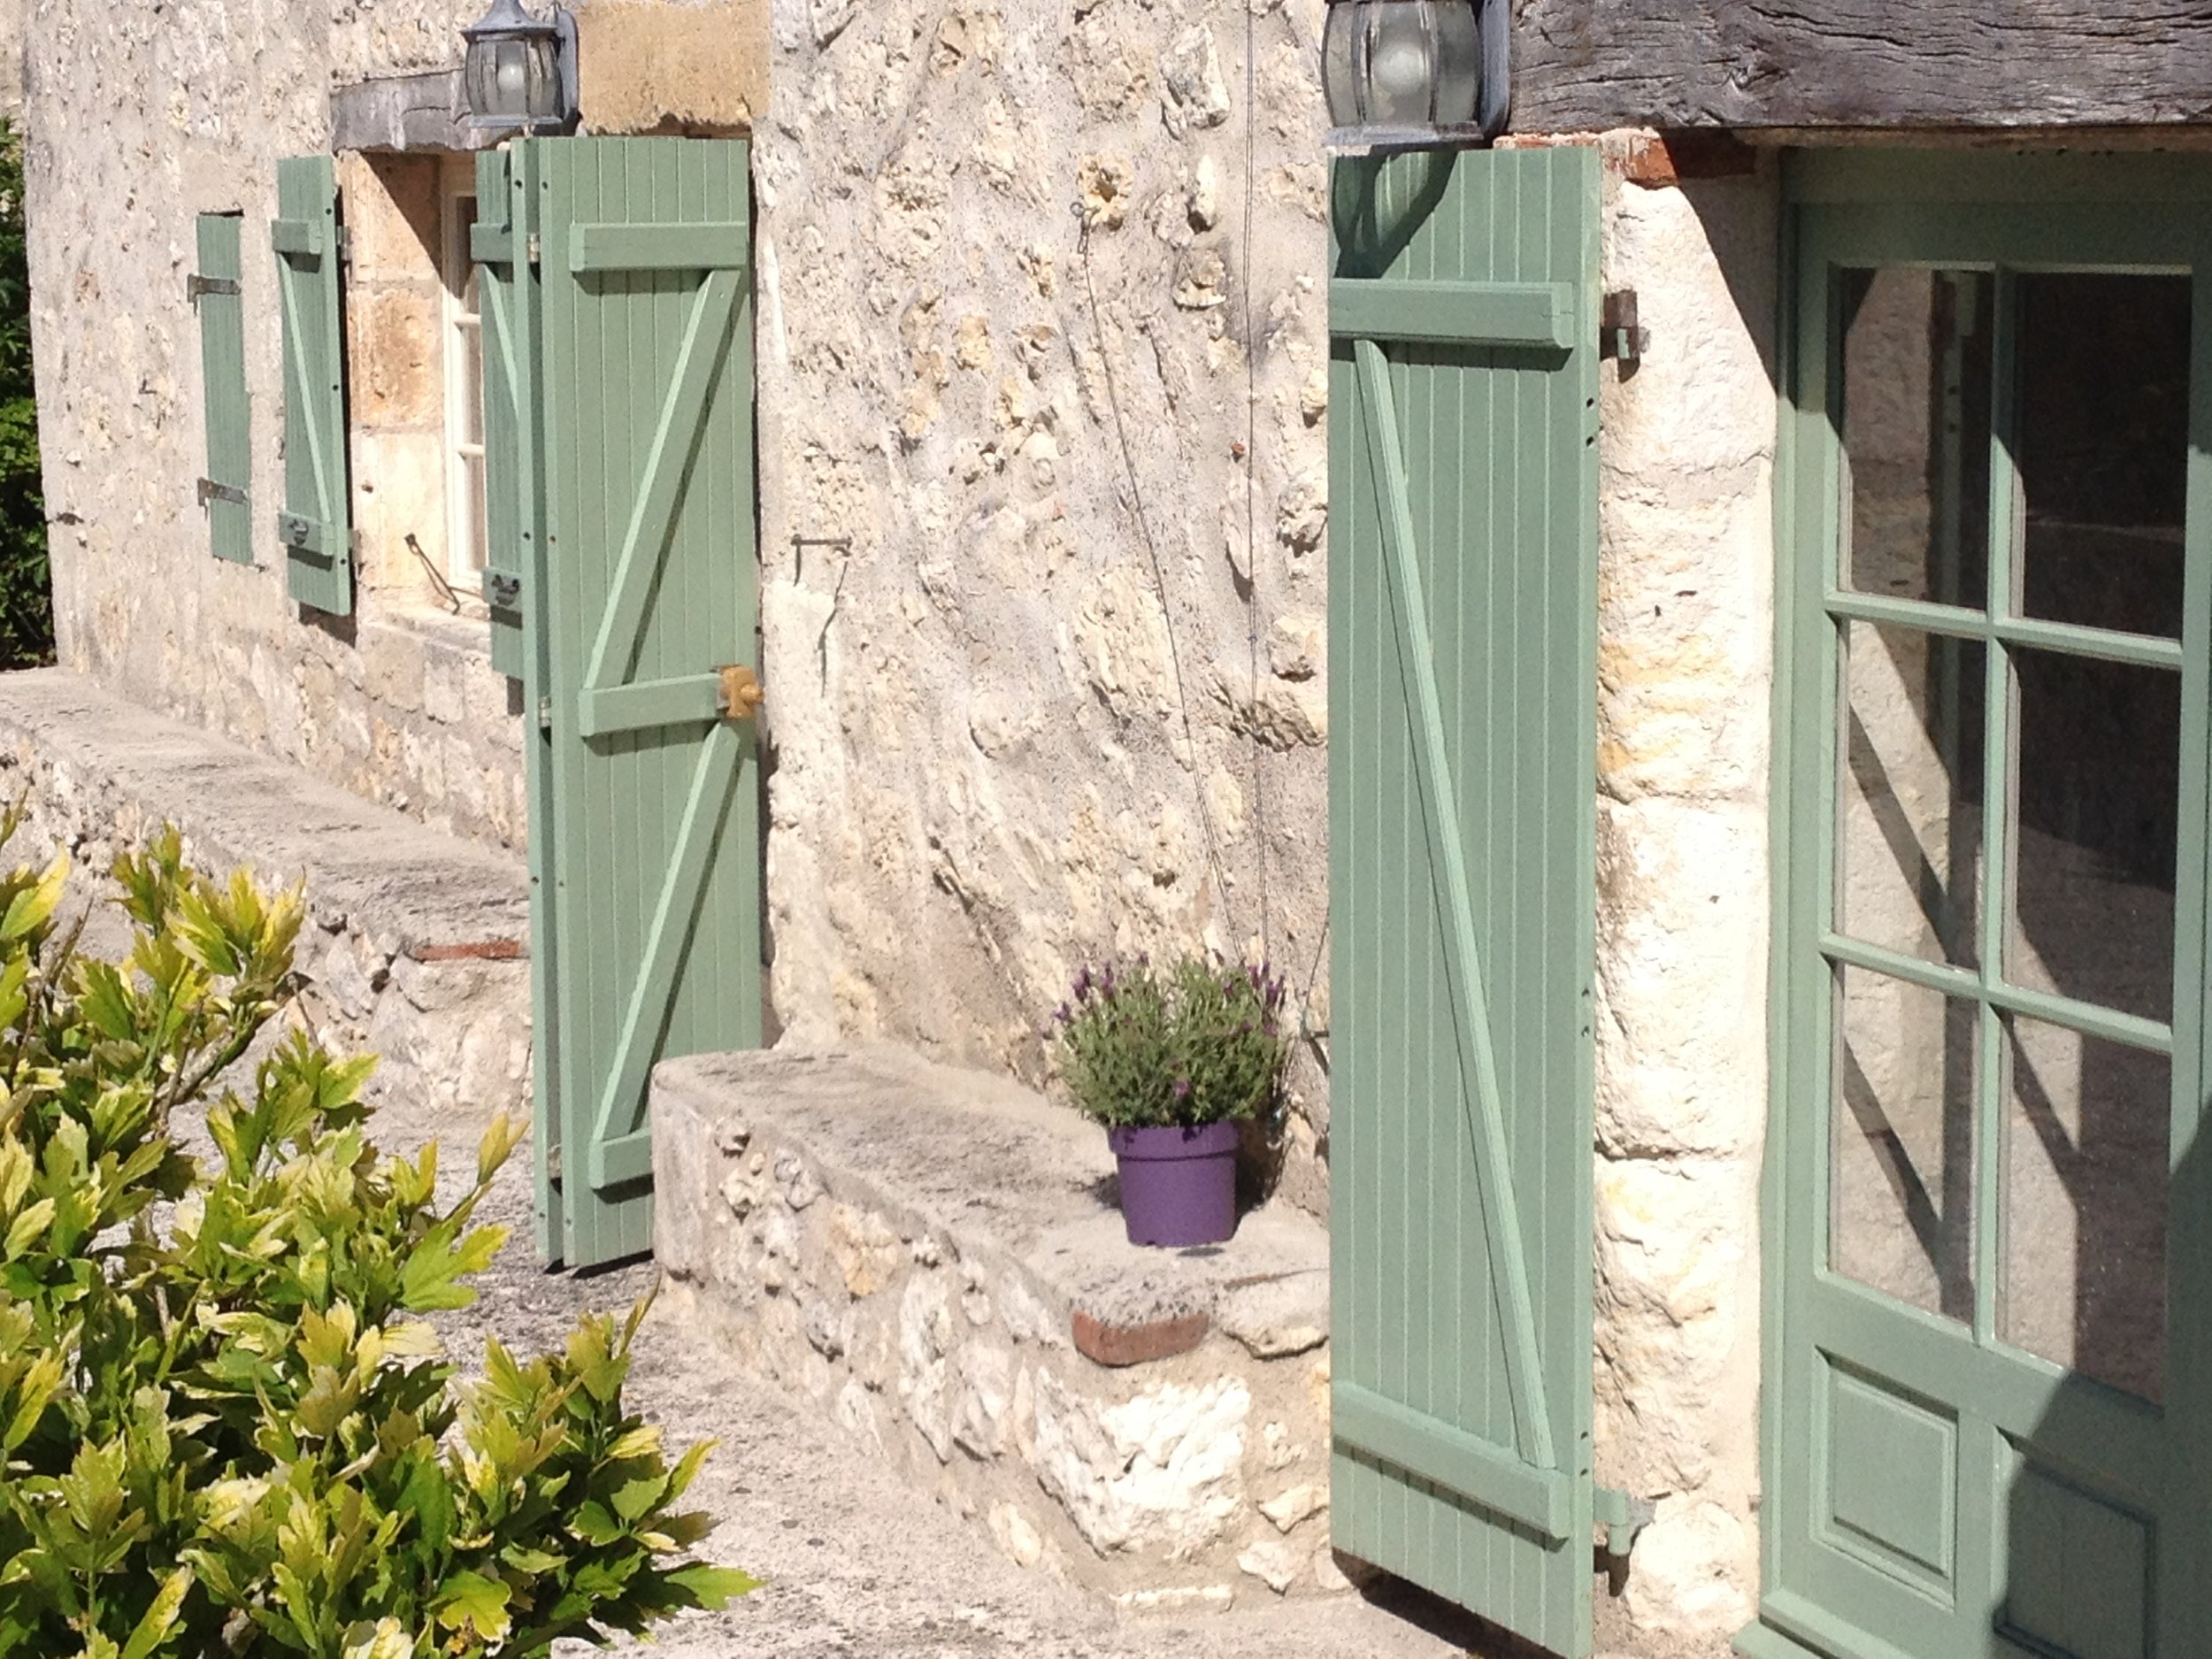 Testing the lavender and the colour of the pot with the shutters...I think it works!